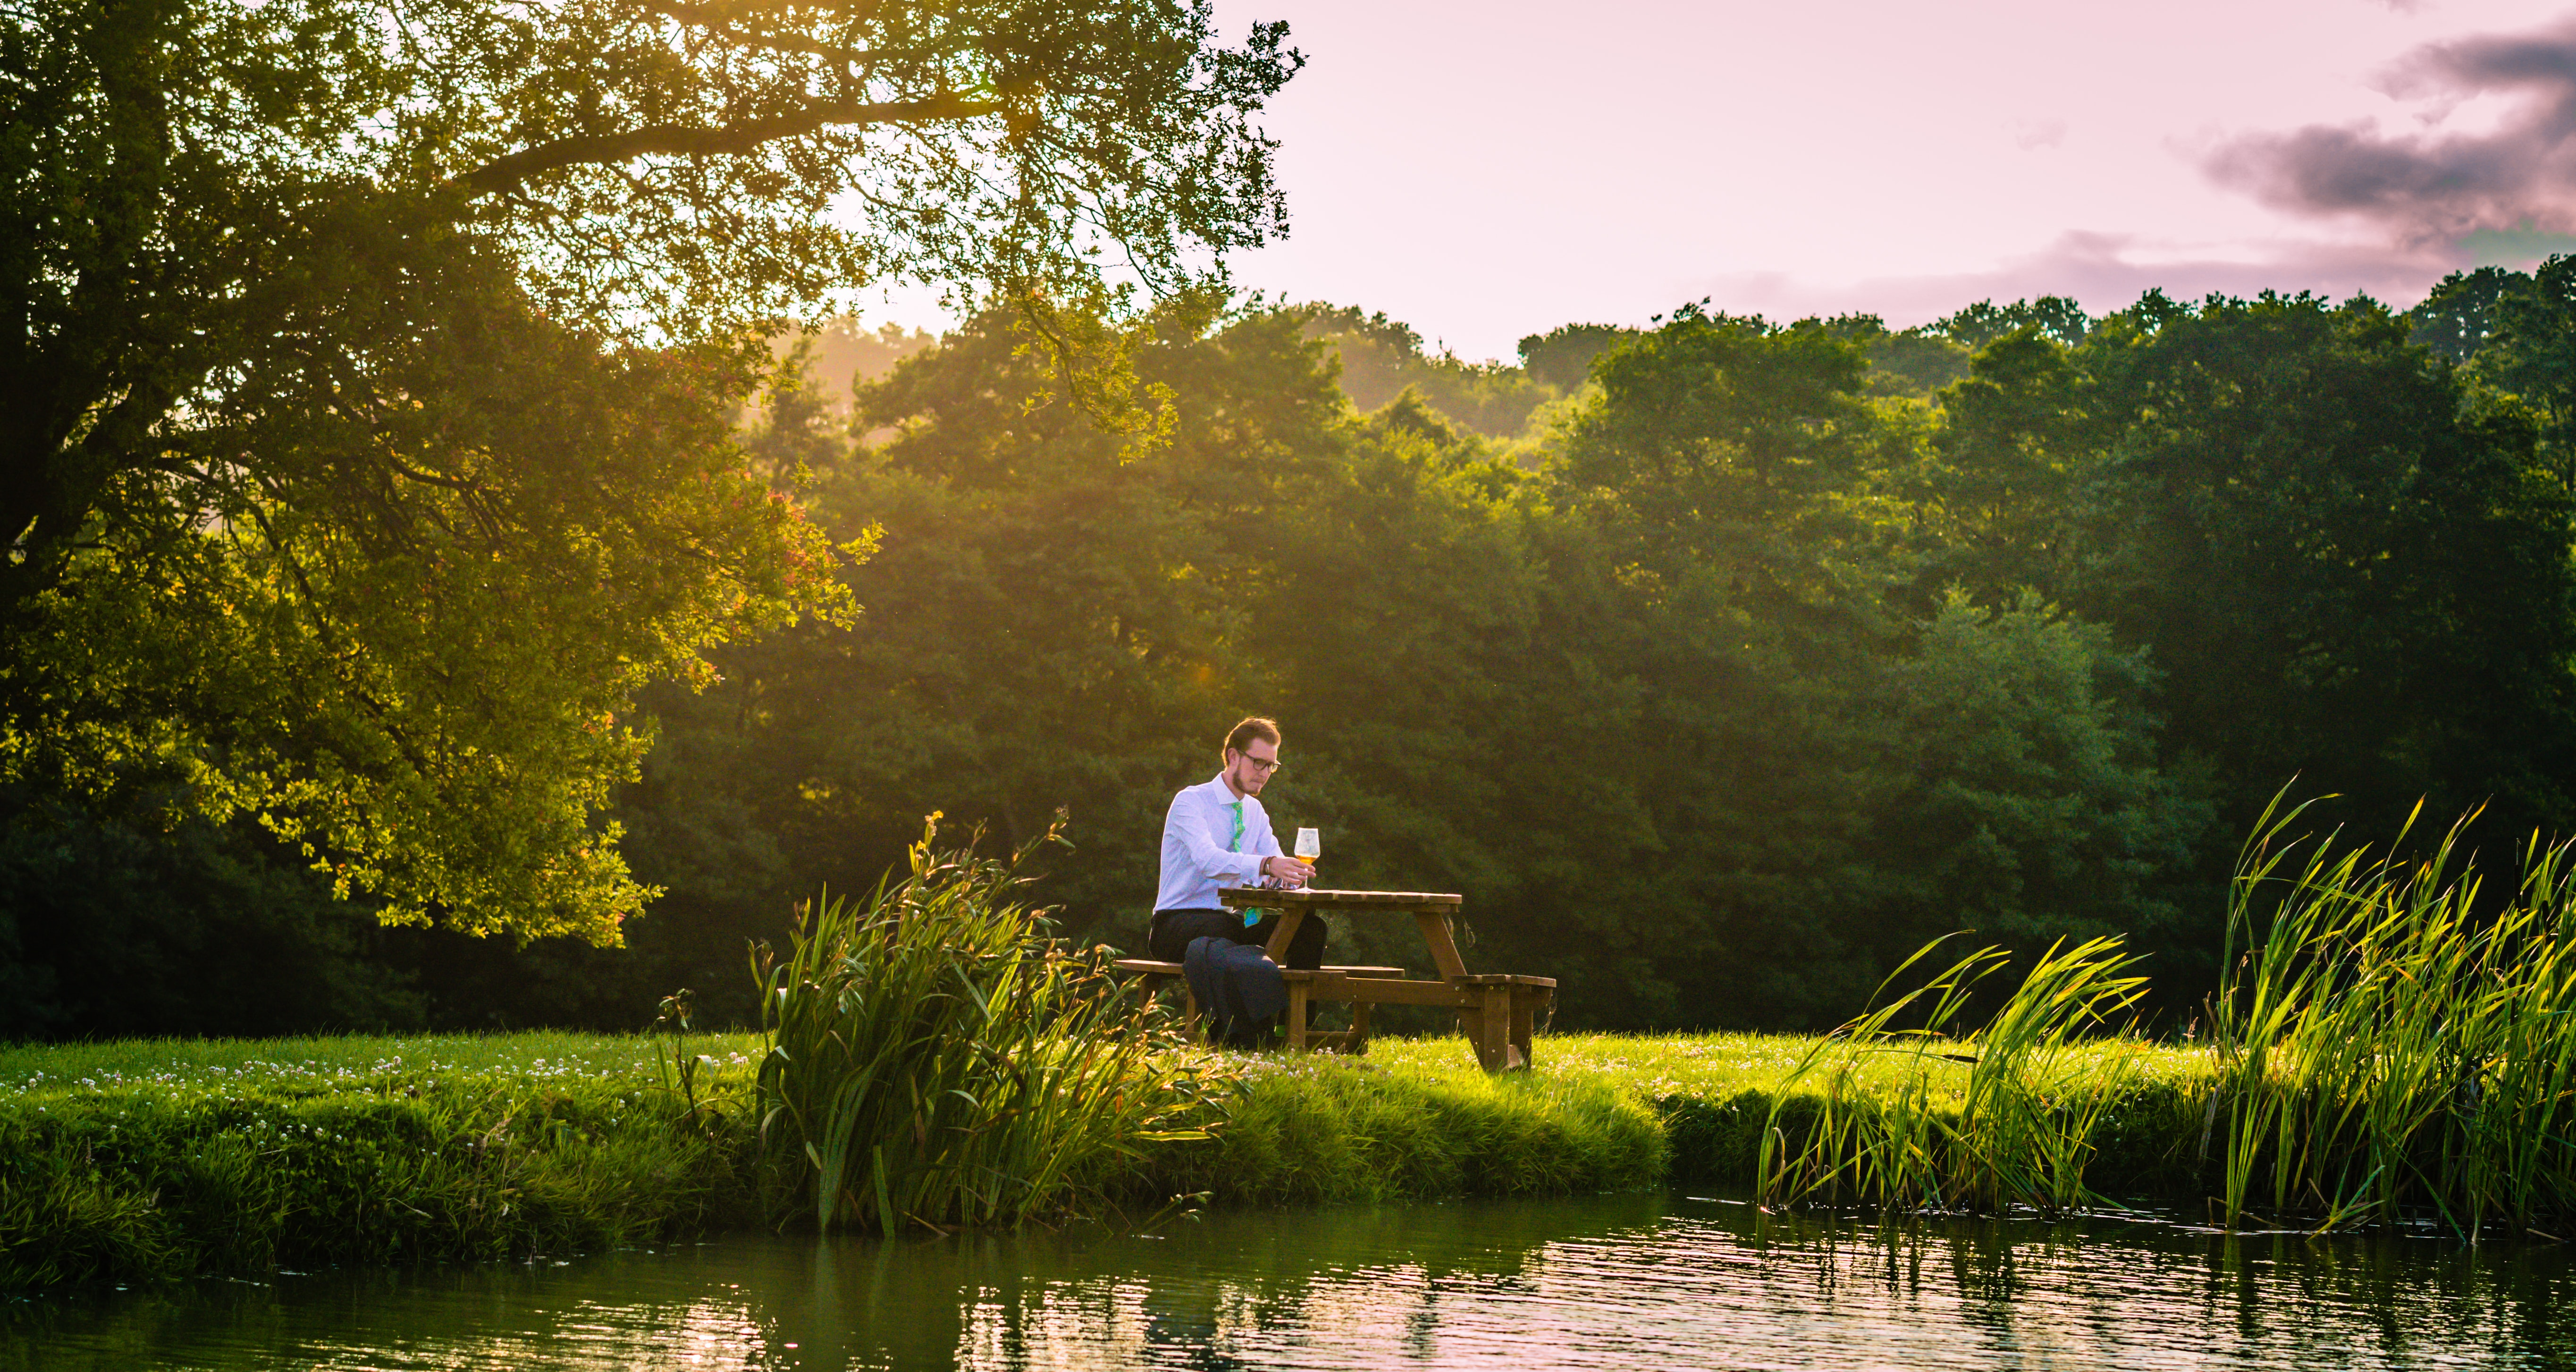 A dressed-up man sits alone, drinking wine at a picnic table aside a lake and trees